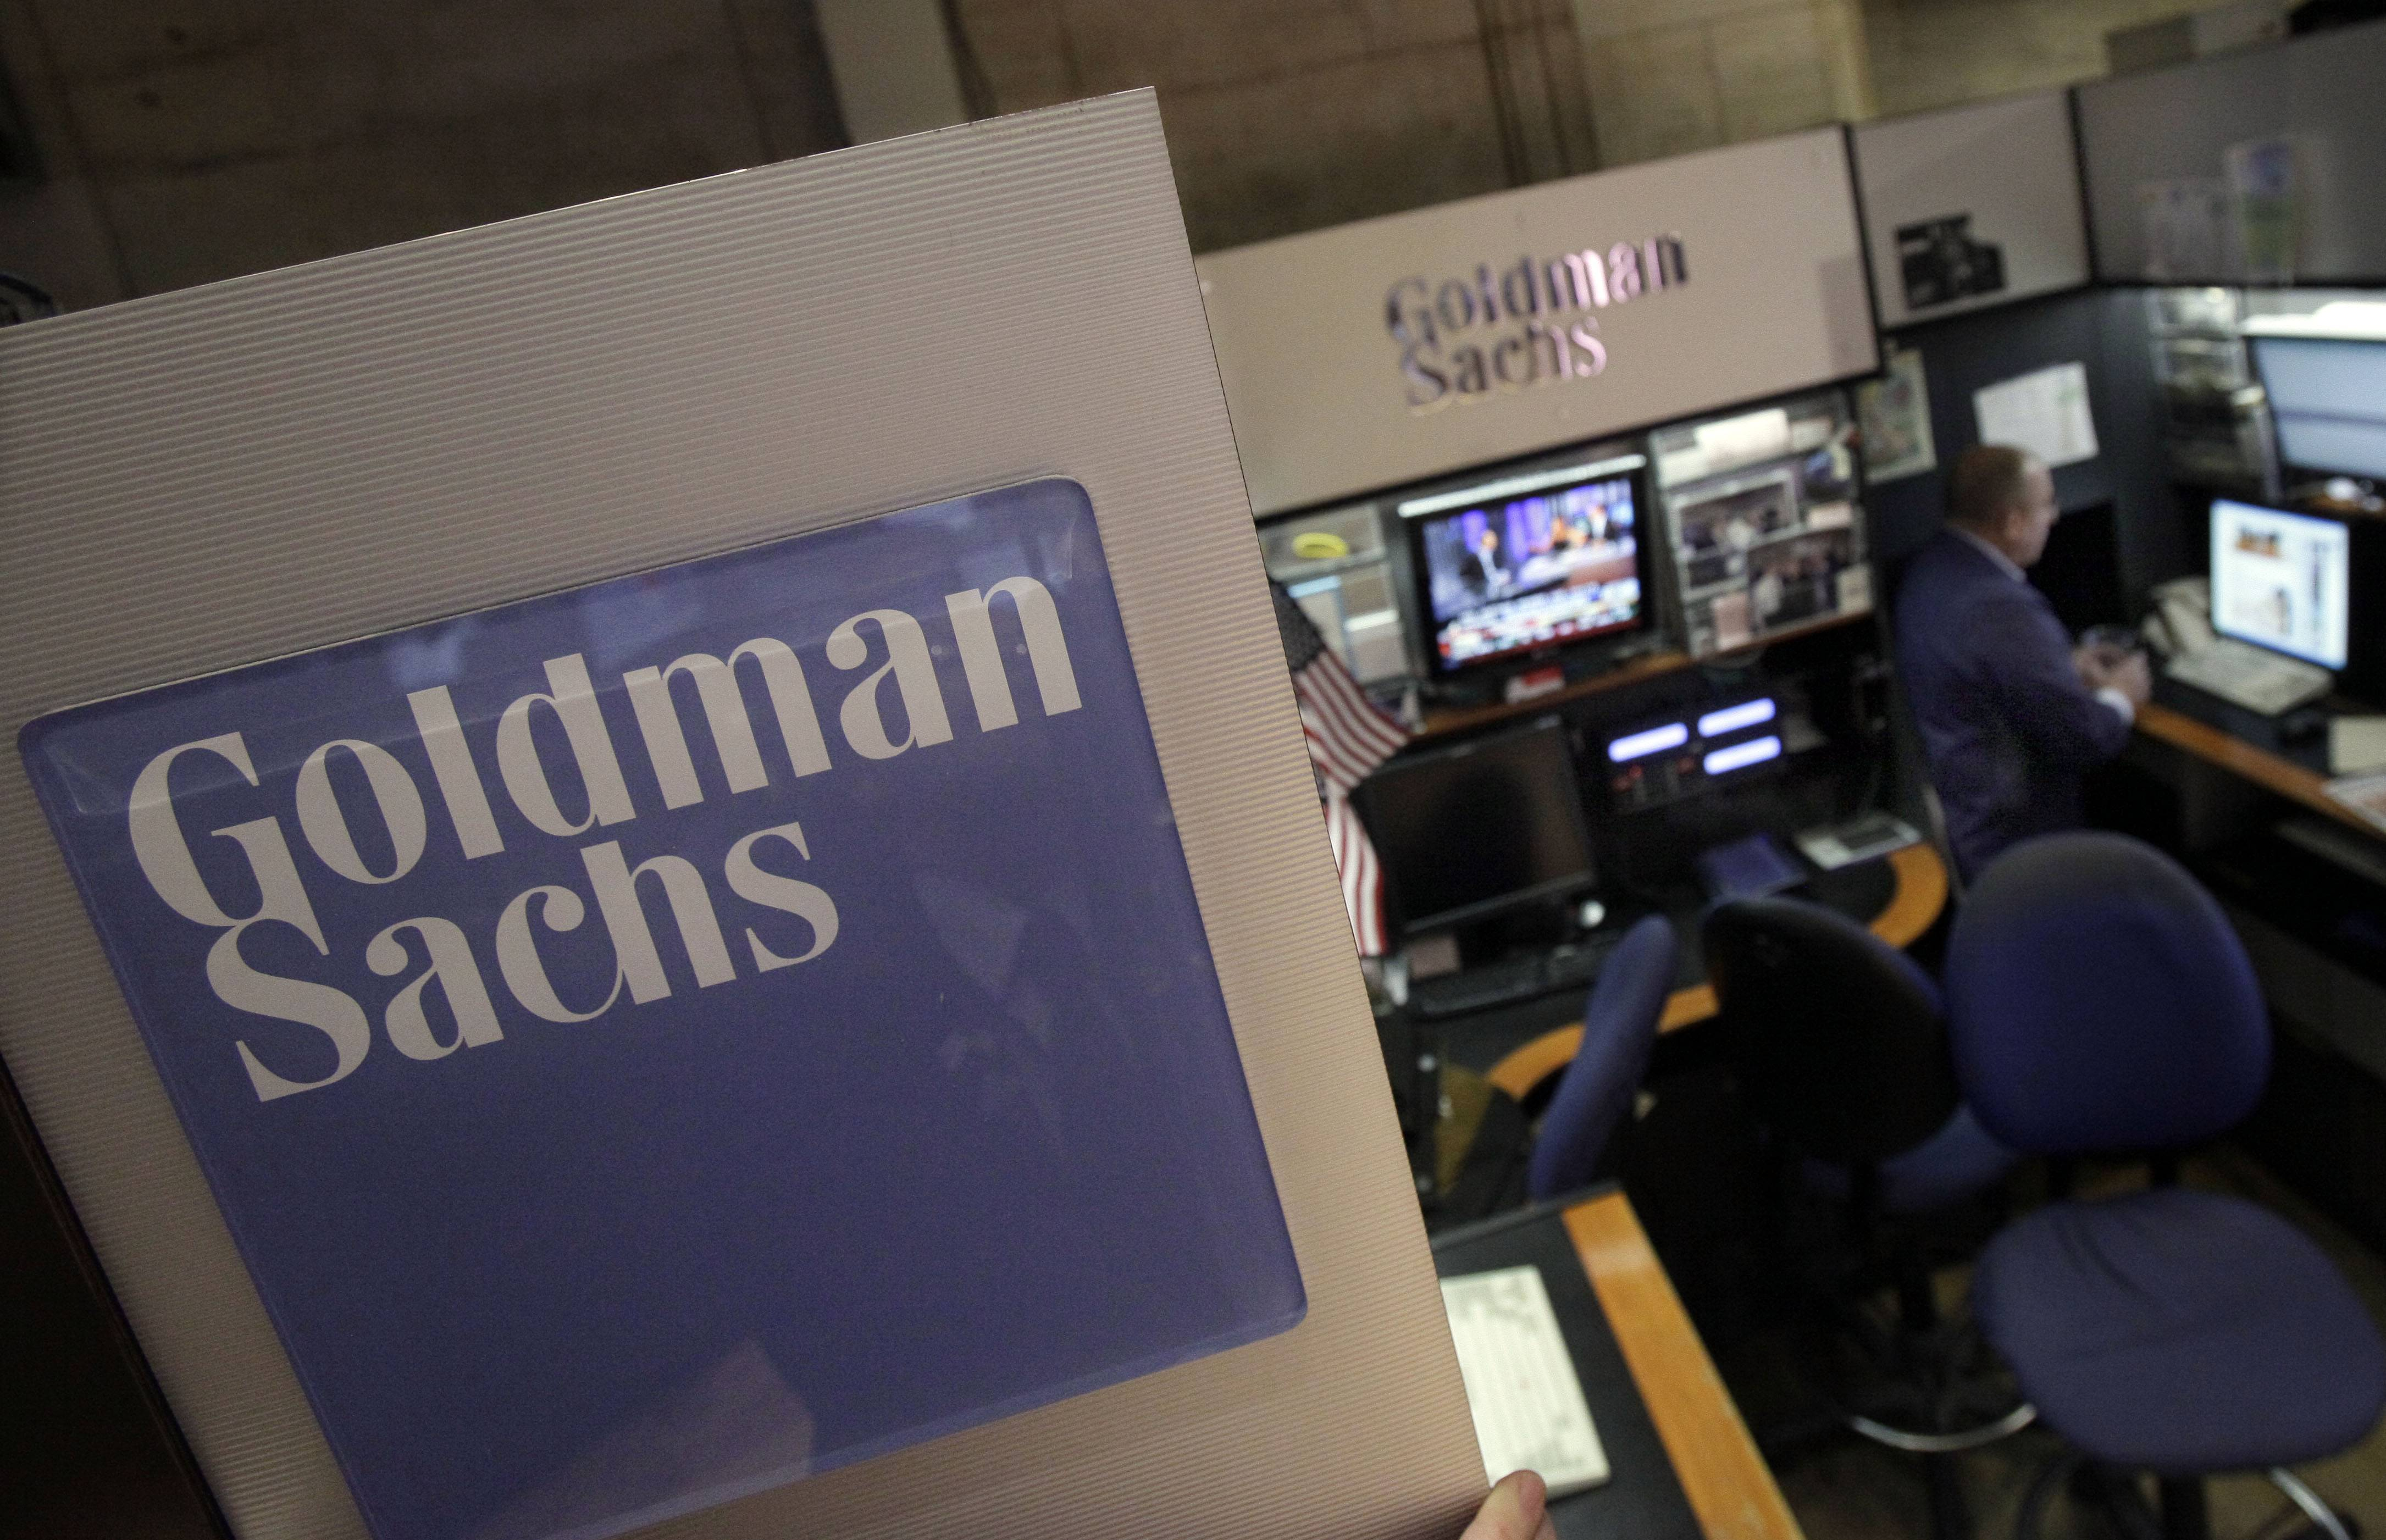 Goldman Sachs' earnings fell in the first quarter as bond trading slumped, but the results still came in well ahead of what investors were expecting.